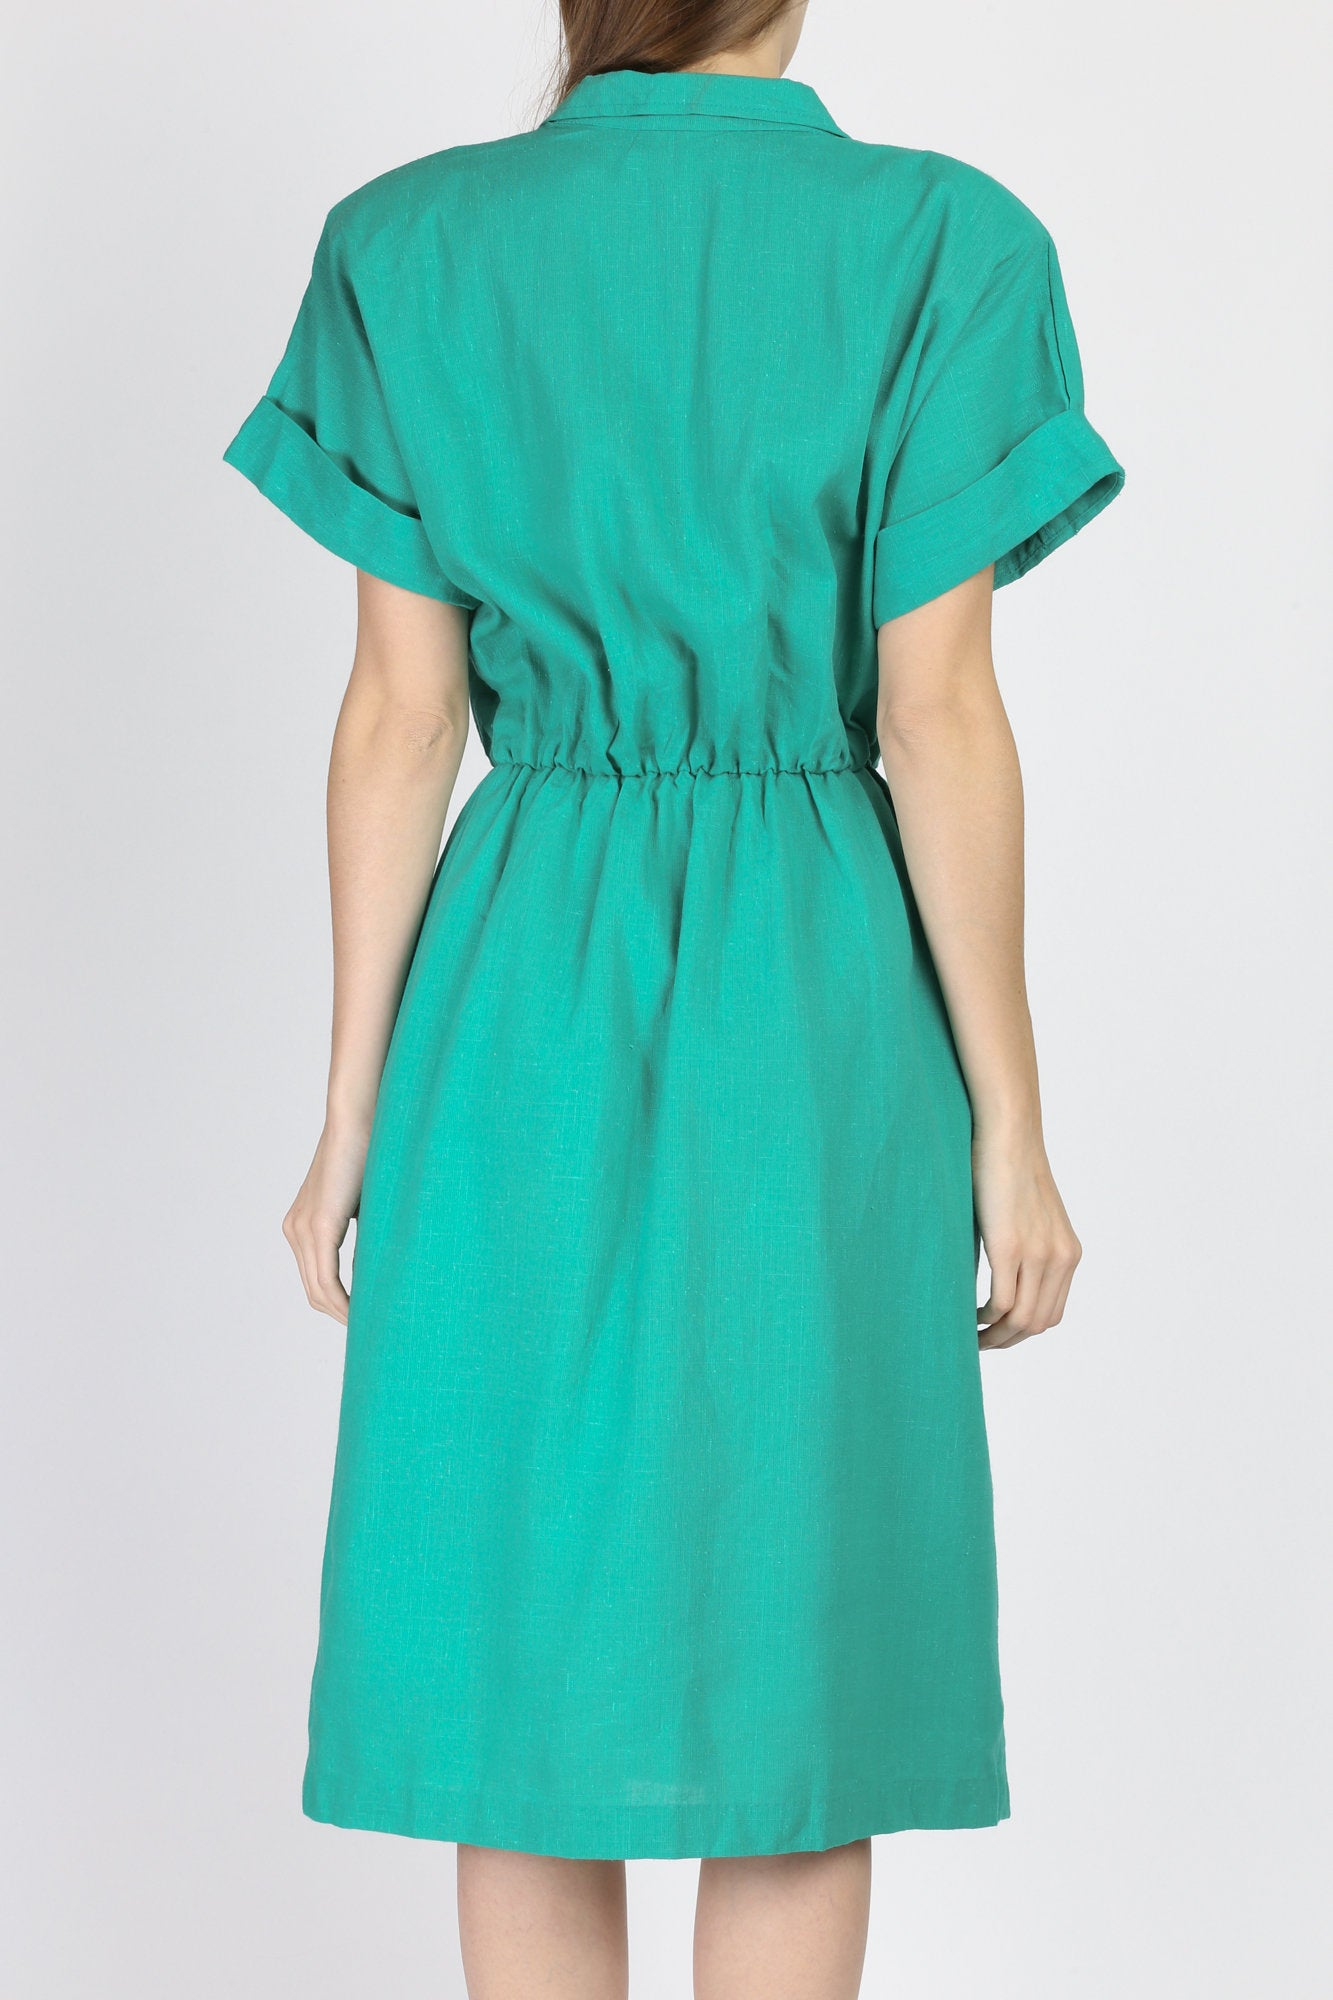 80s Green Midi Wrap Dress - Large